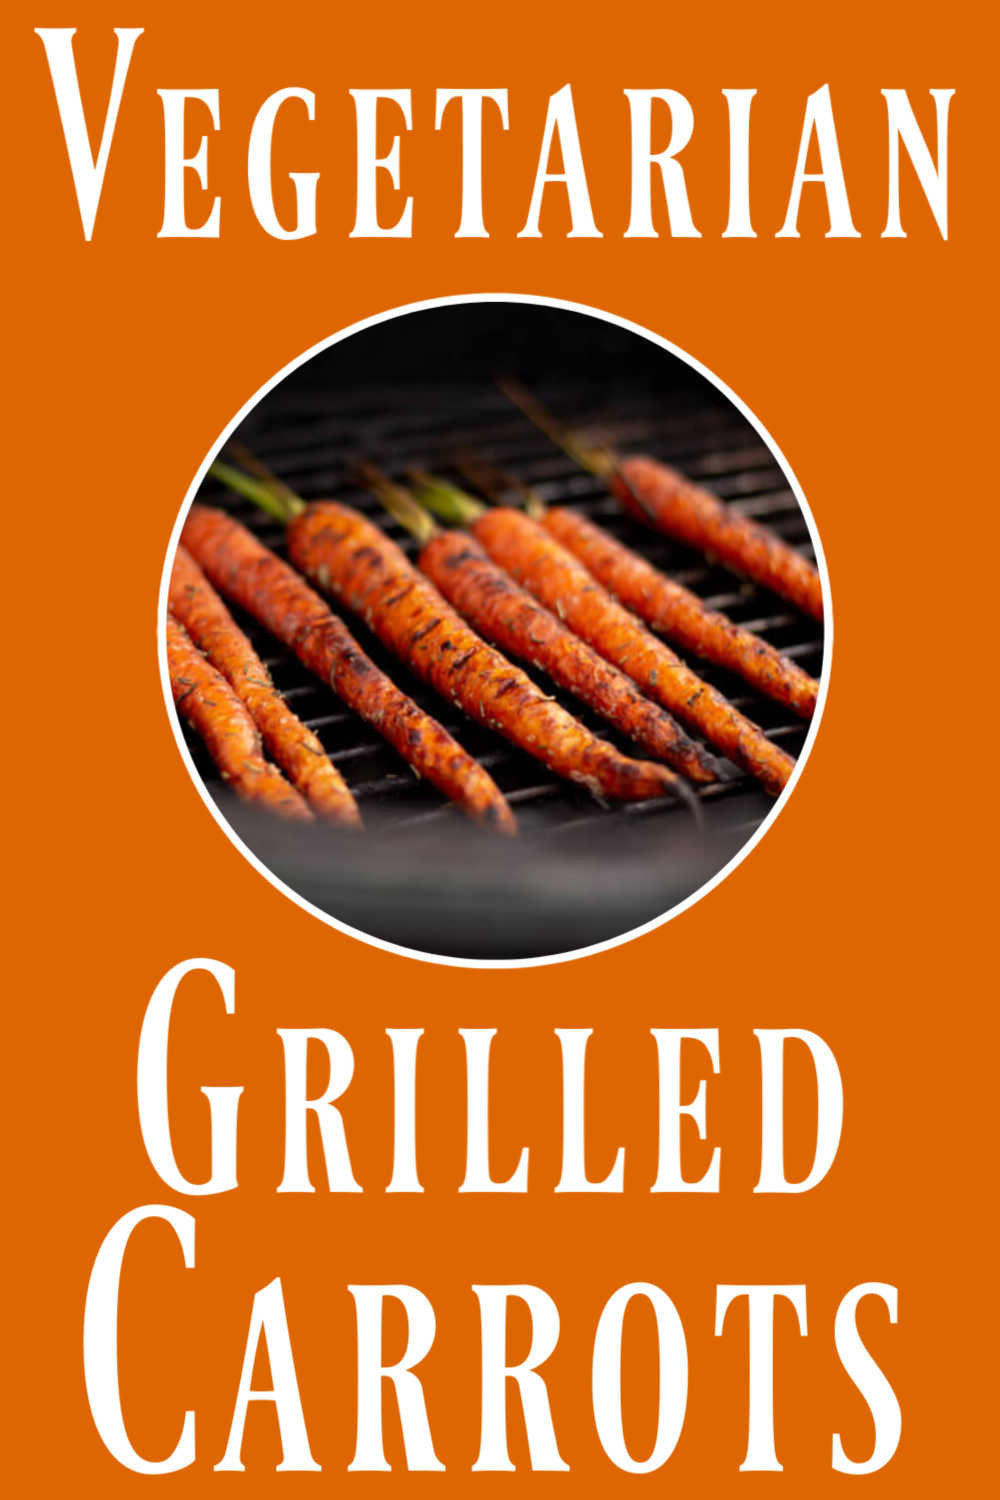 Grilled Carrots with Balsamic Glaze